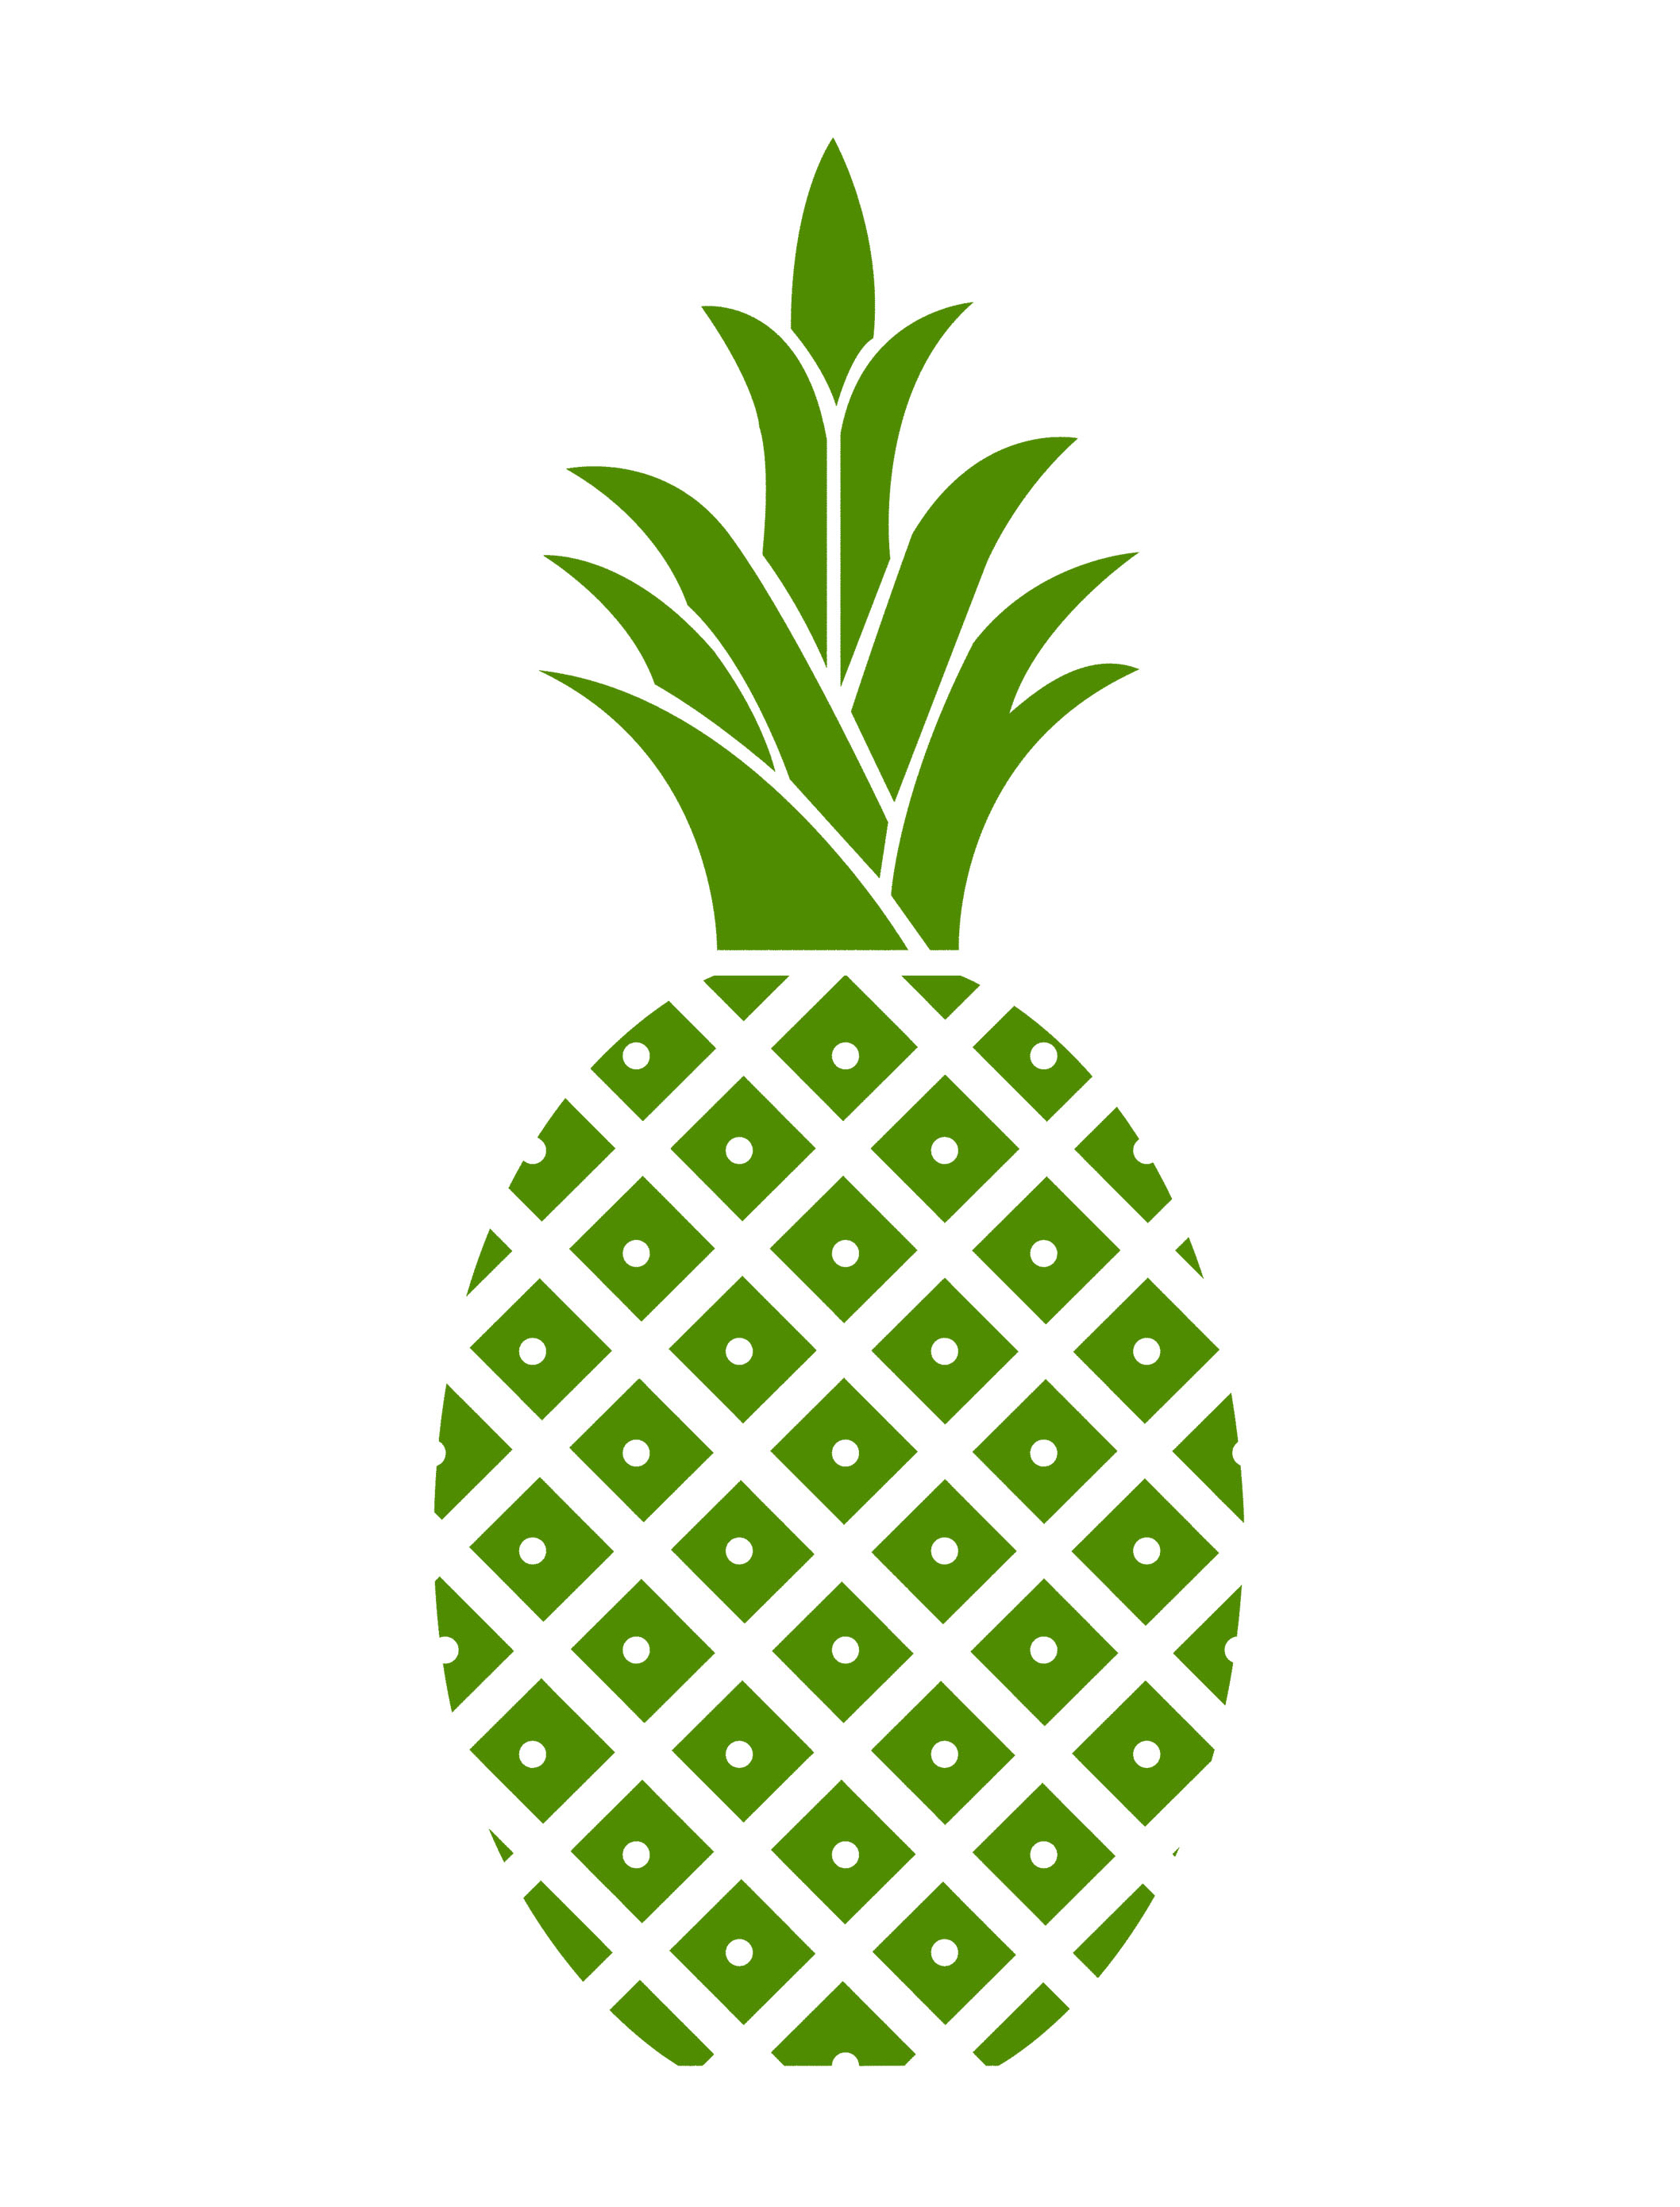 Hospitality Pineapple Green Pineapple Cropped | Free ...